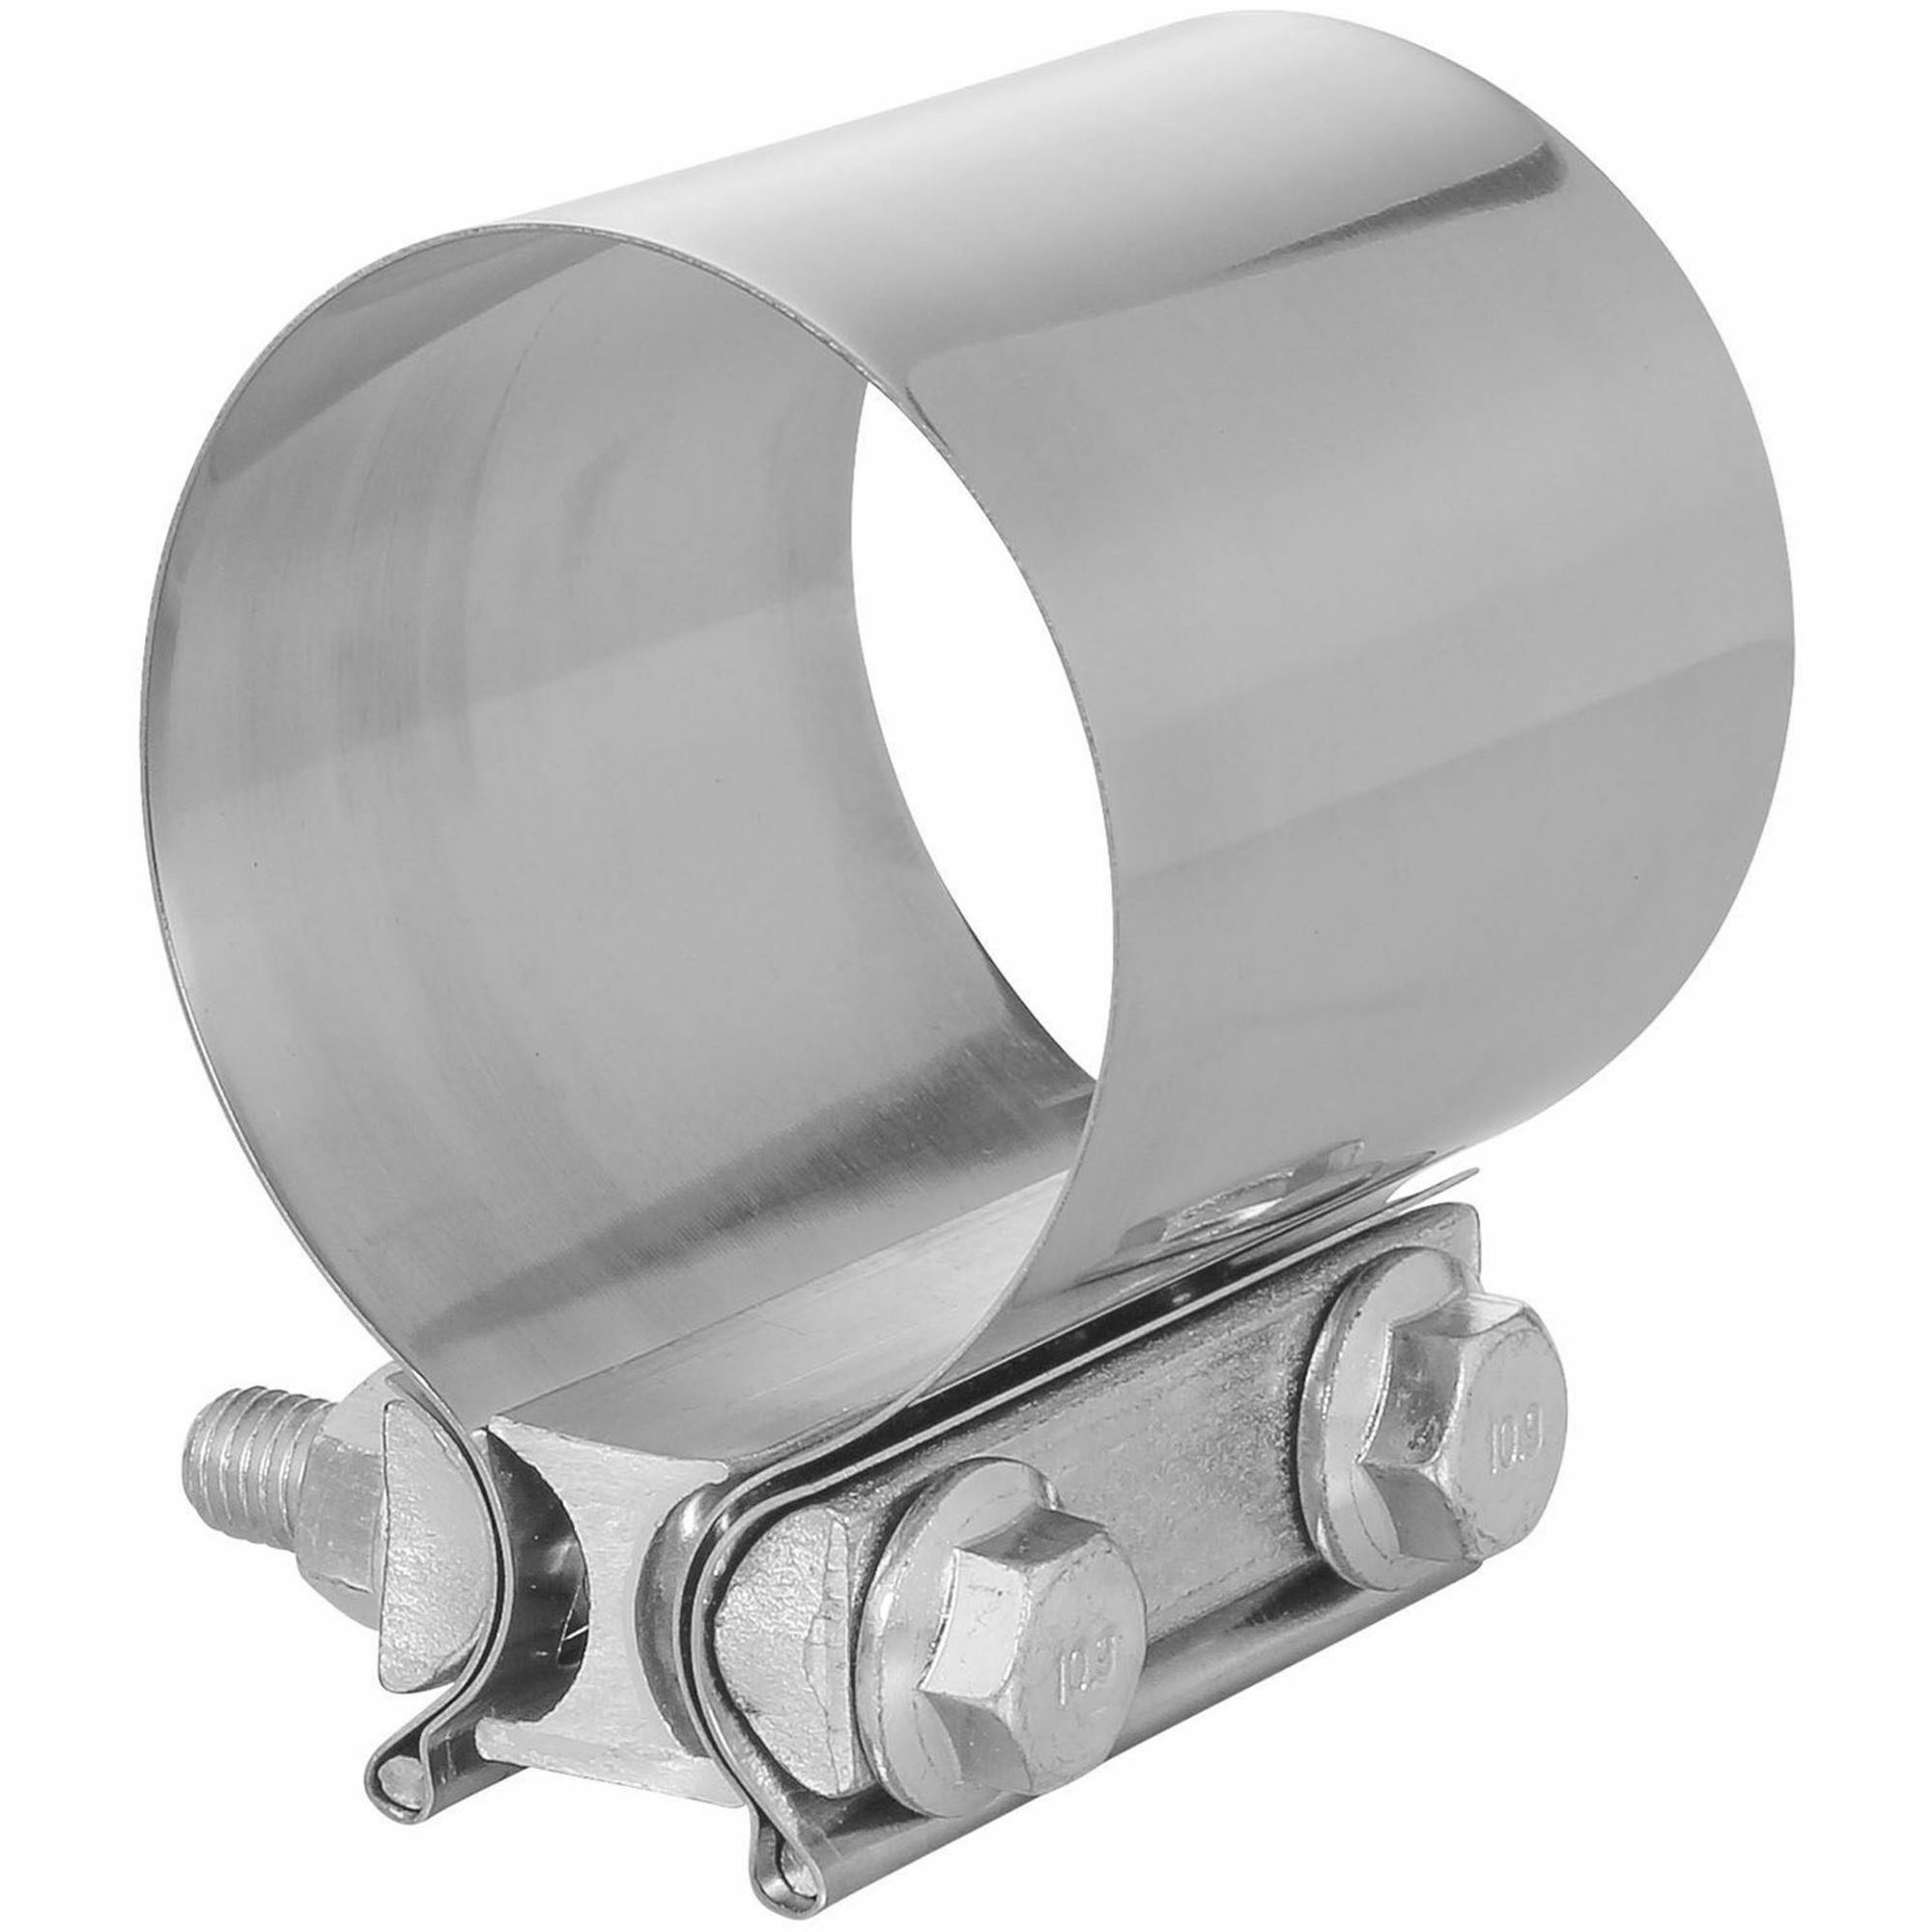 totalflow tf jb62 butt joint exhaust muffler clamp band 4 inch